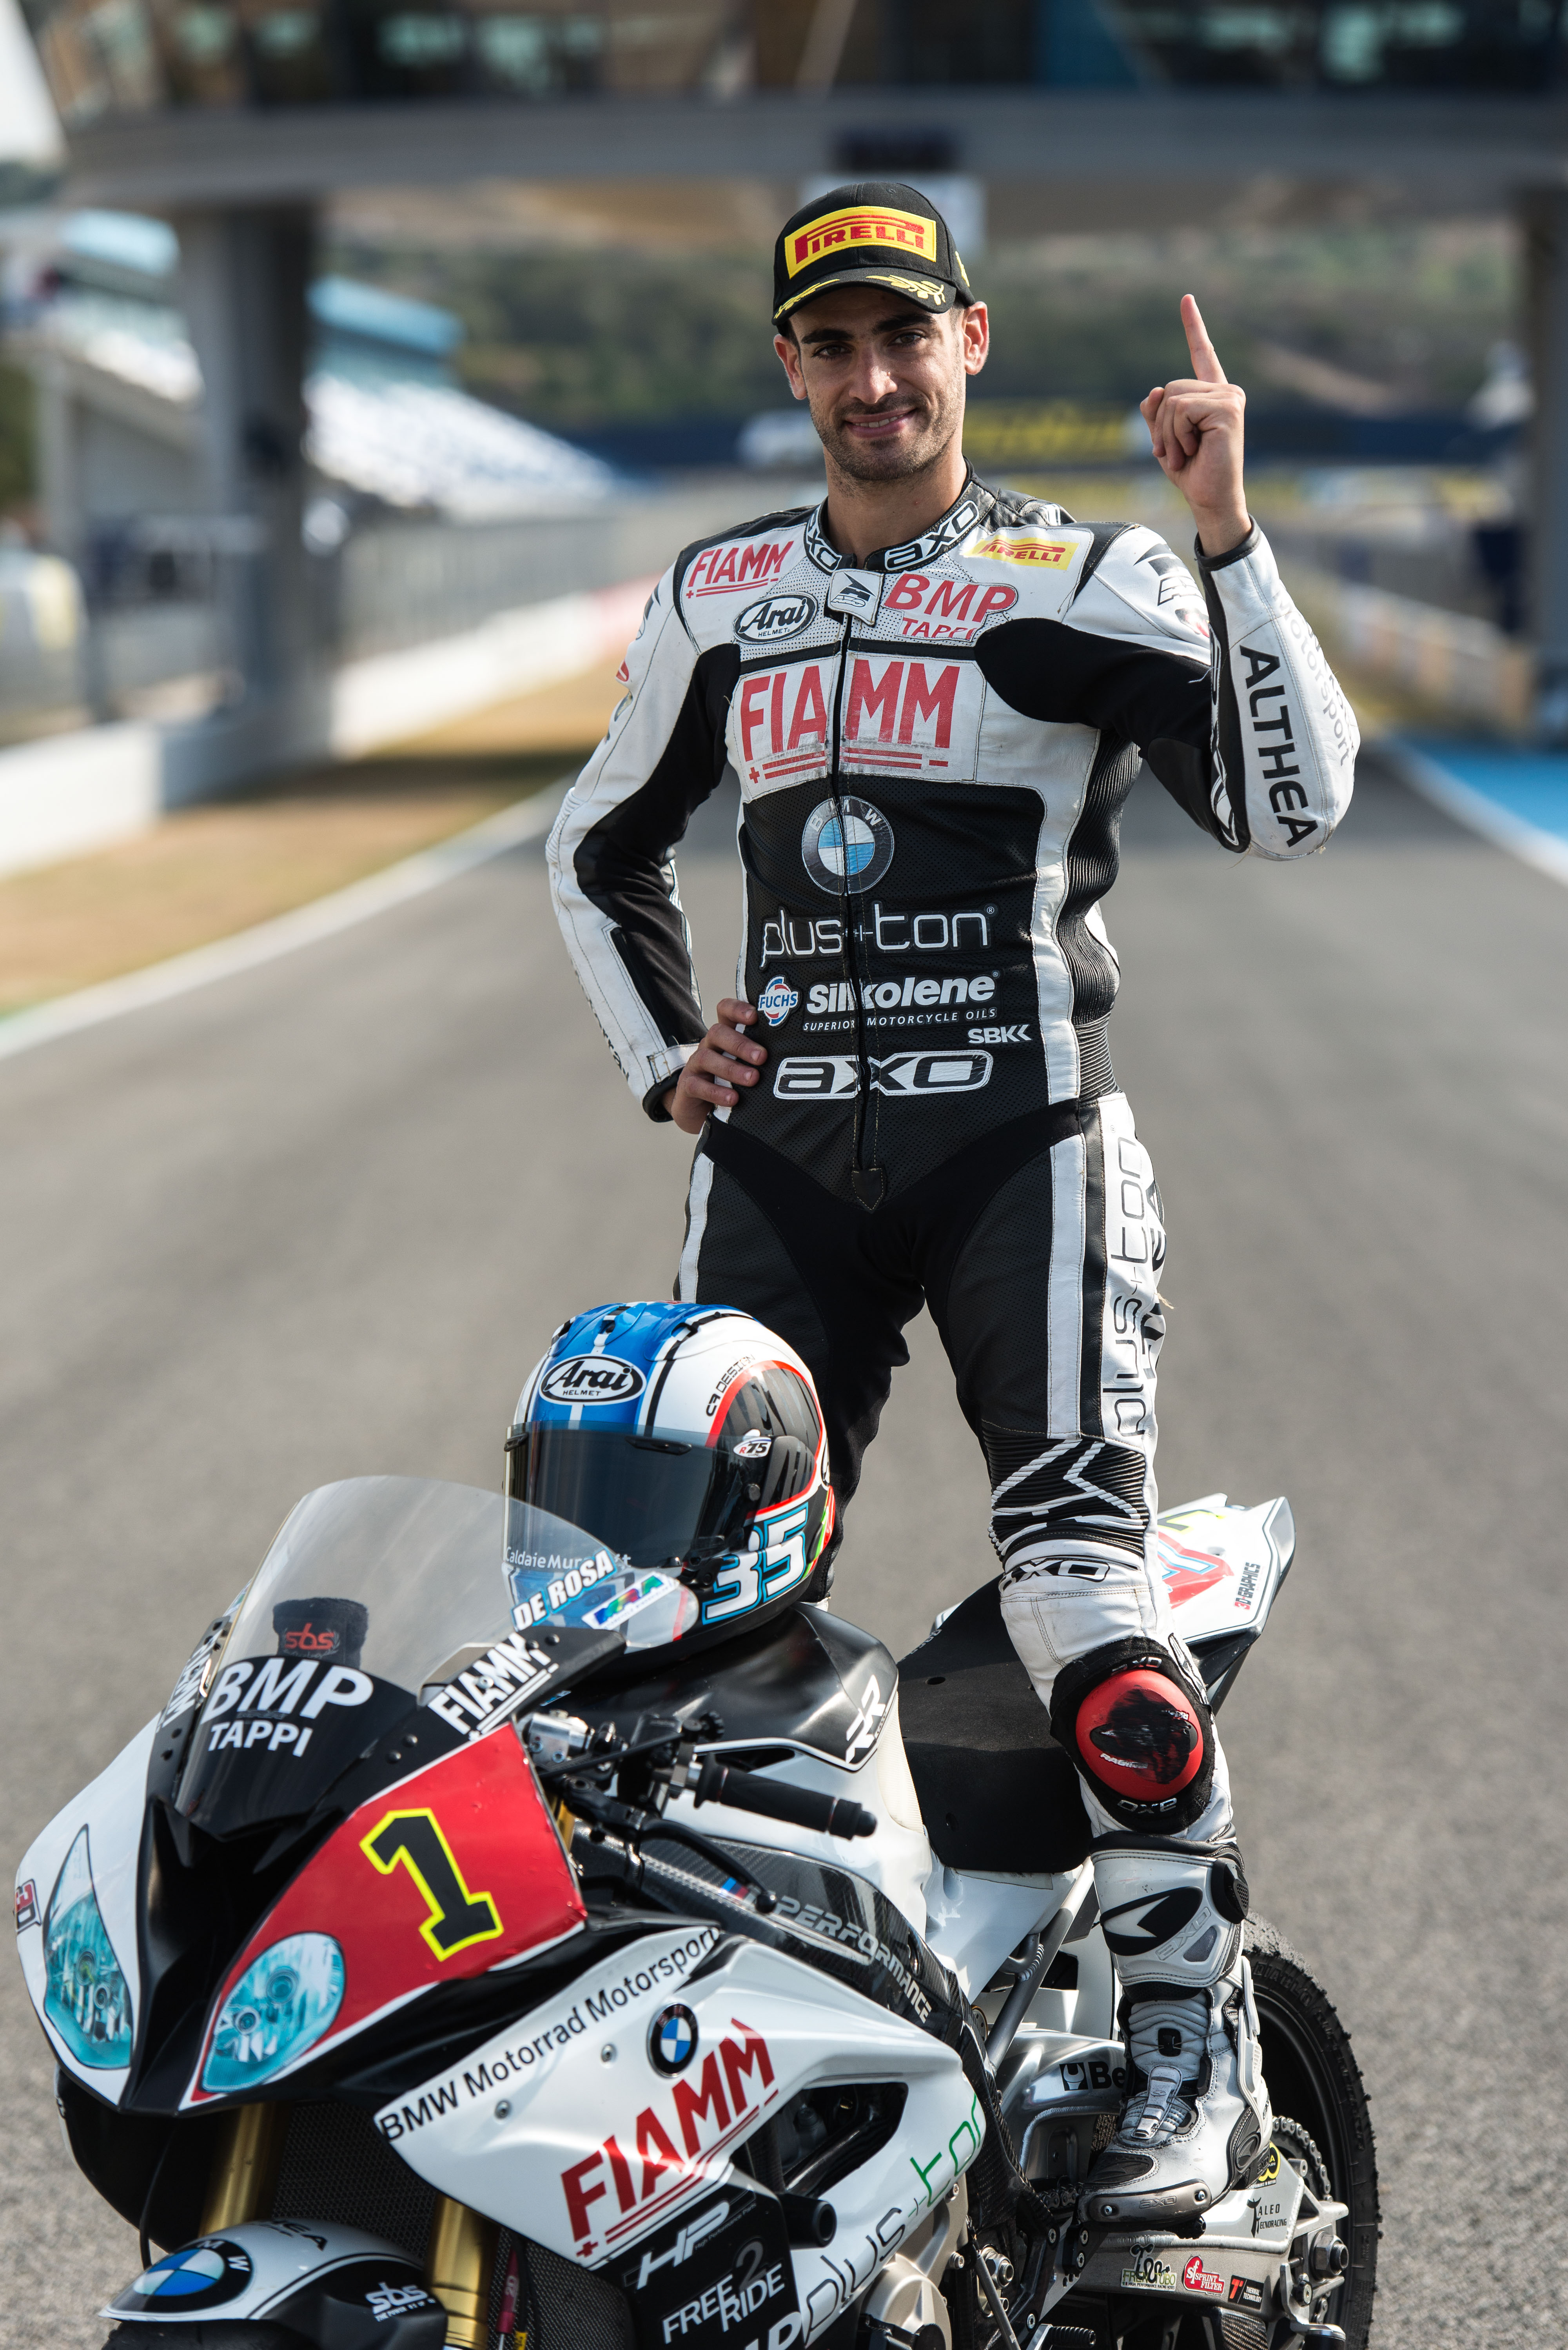 The next title win for the BMW S 1000 RR: Raffaele De Rosa is champion in the FIM Superstock 1000 Cup.